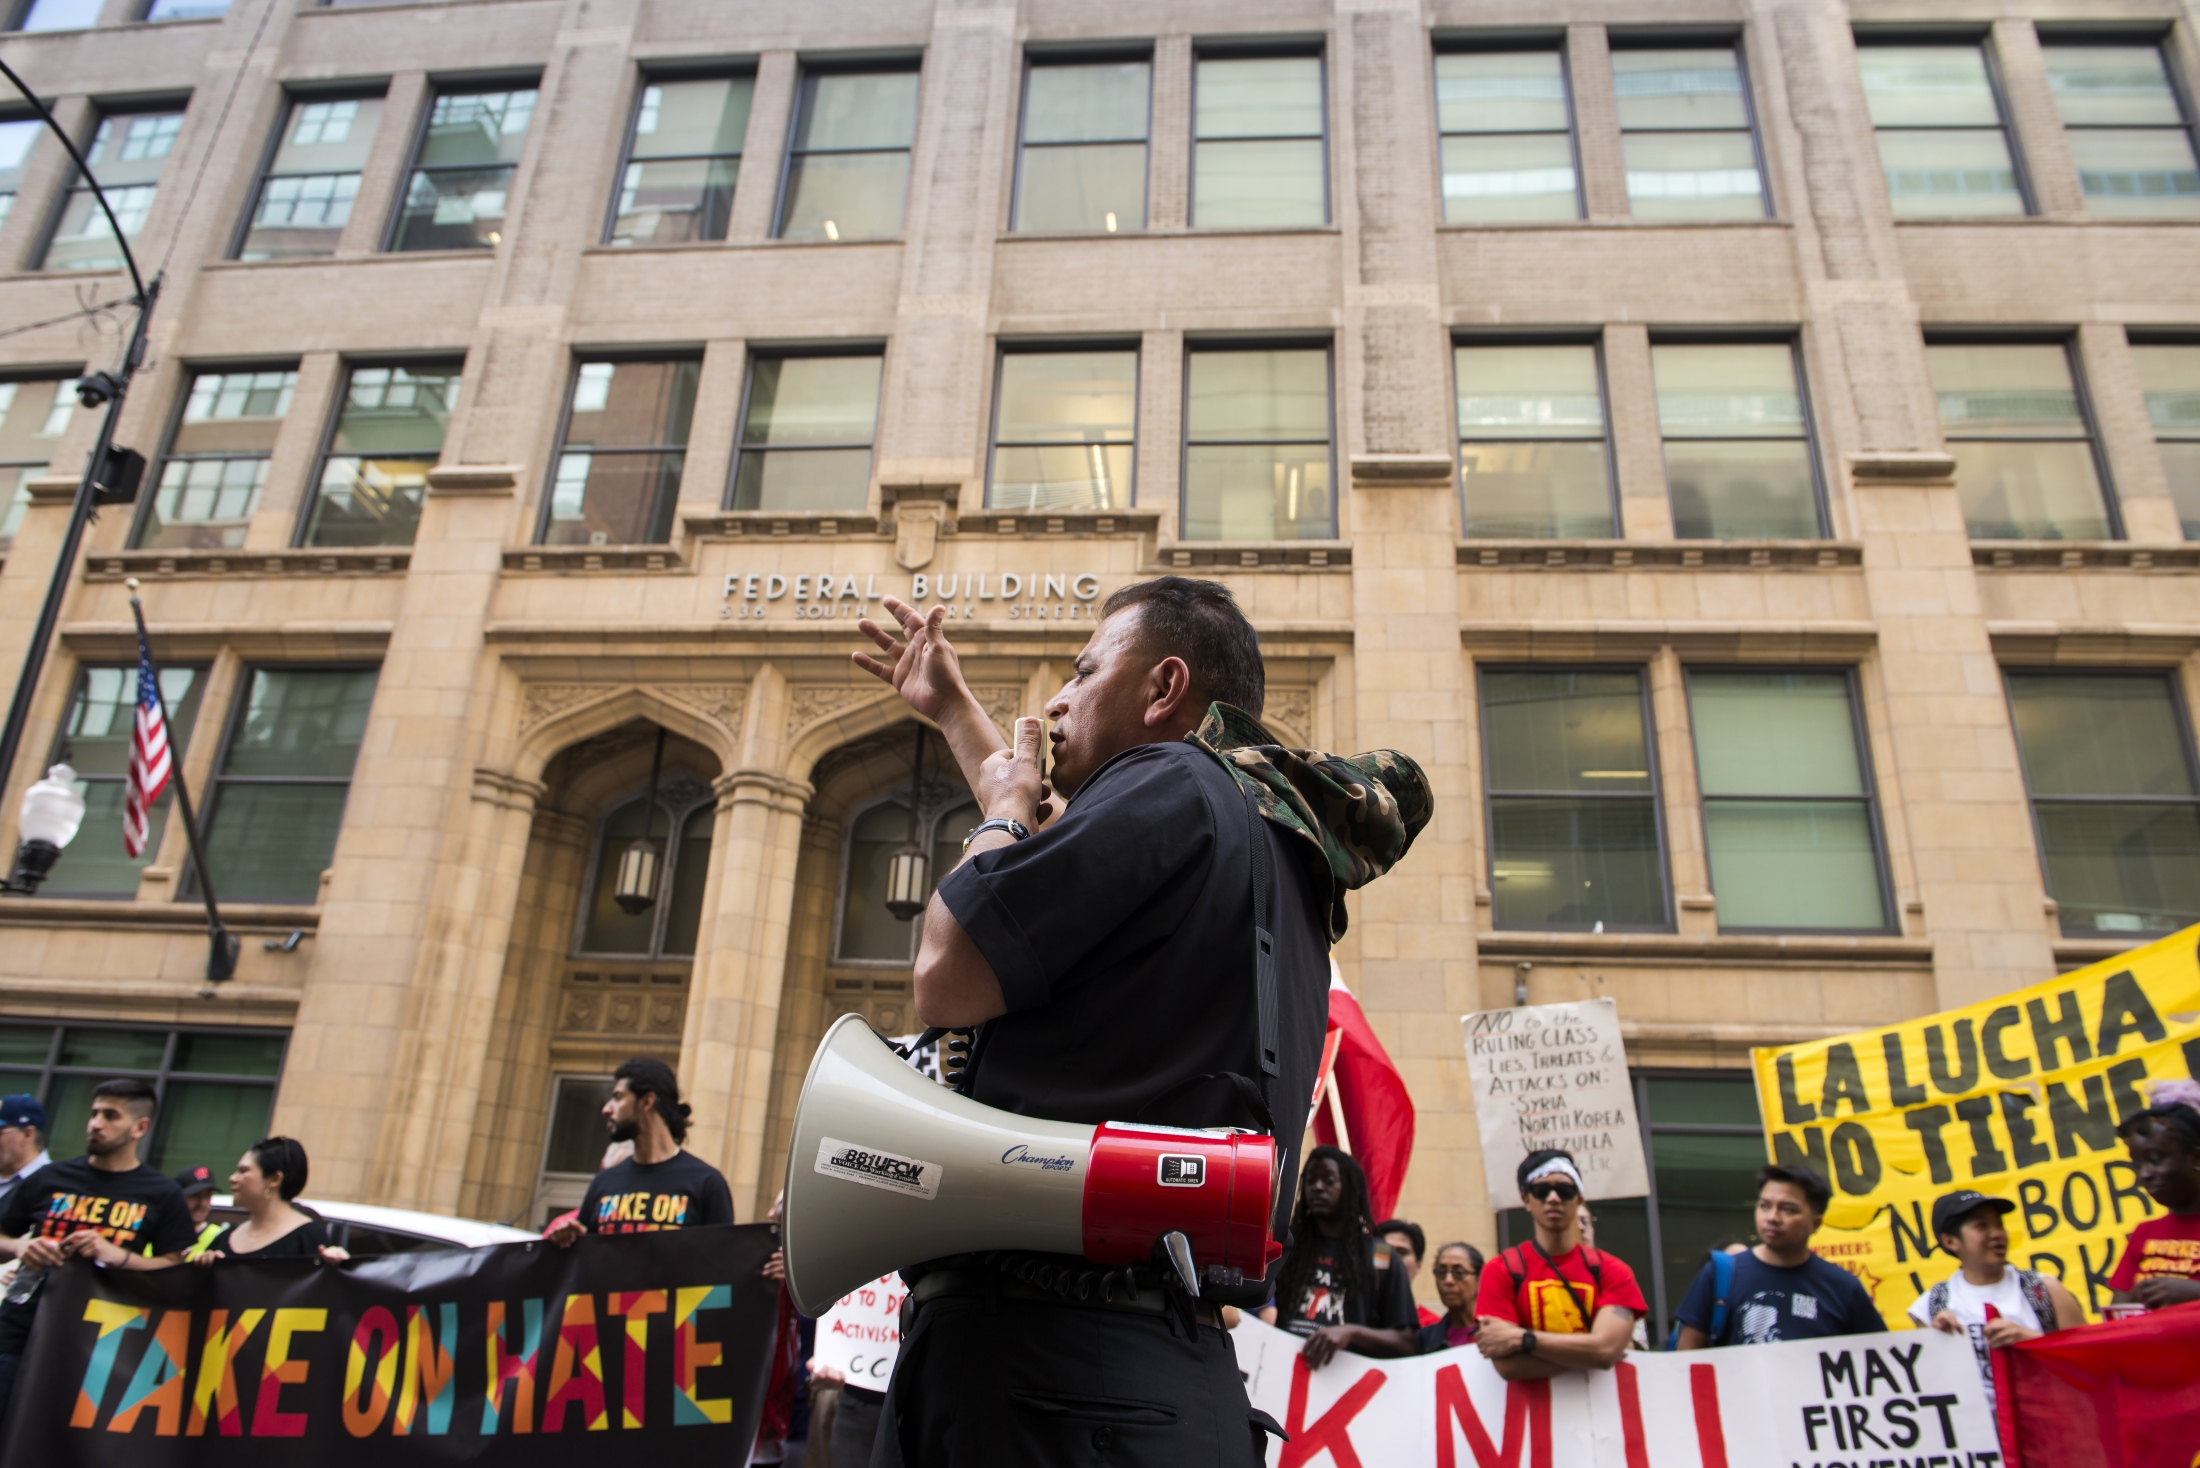 5.01.2018 - Chicago